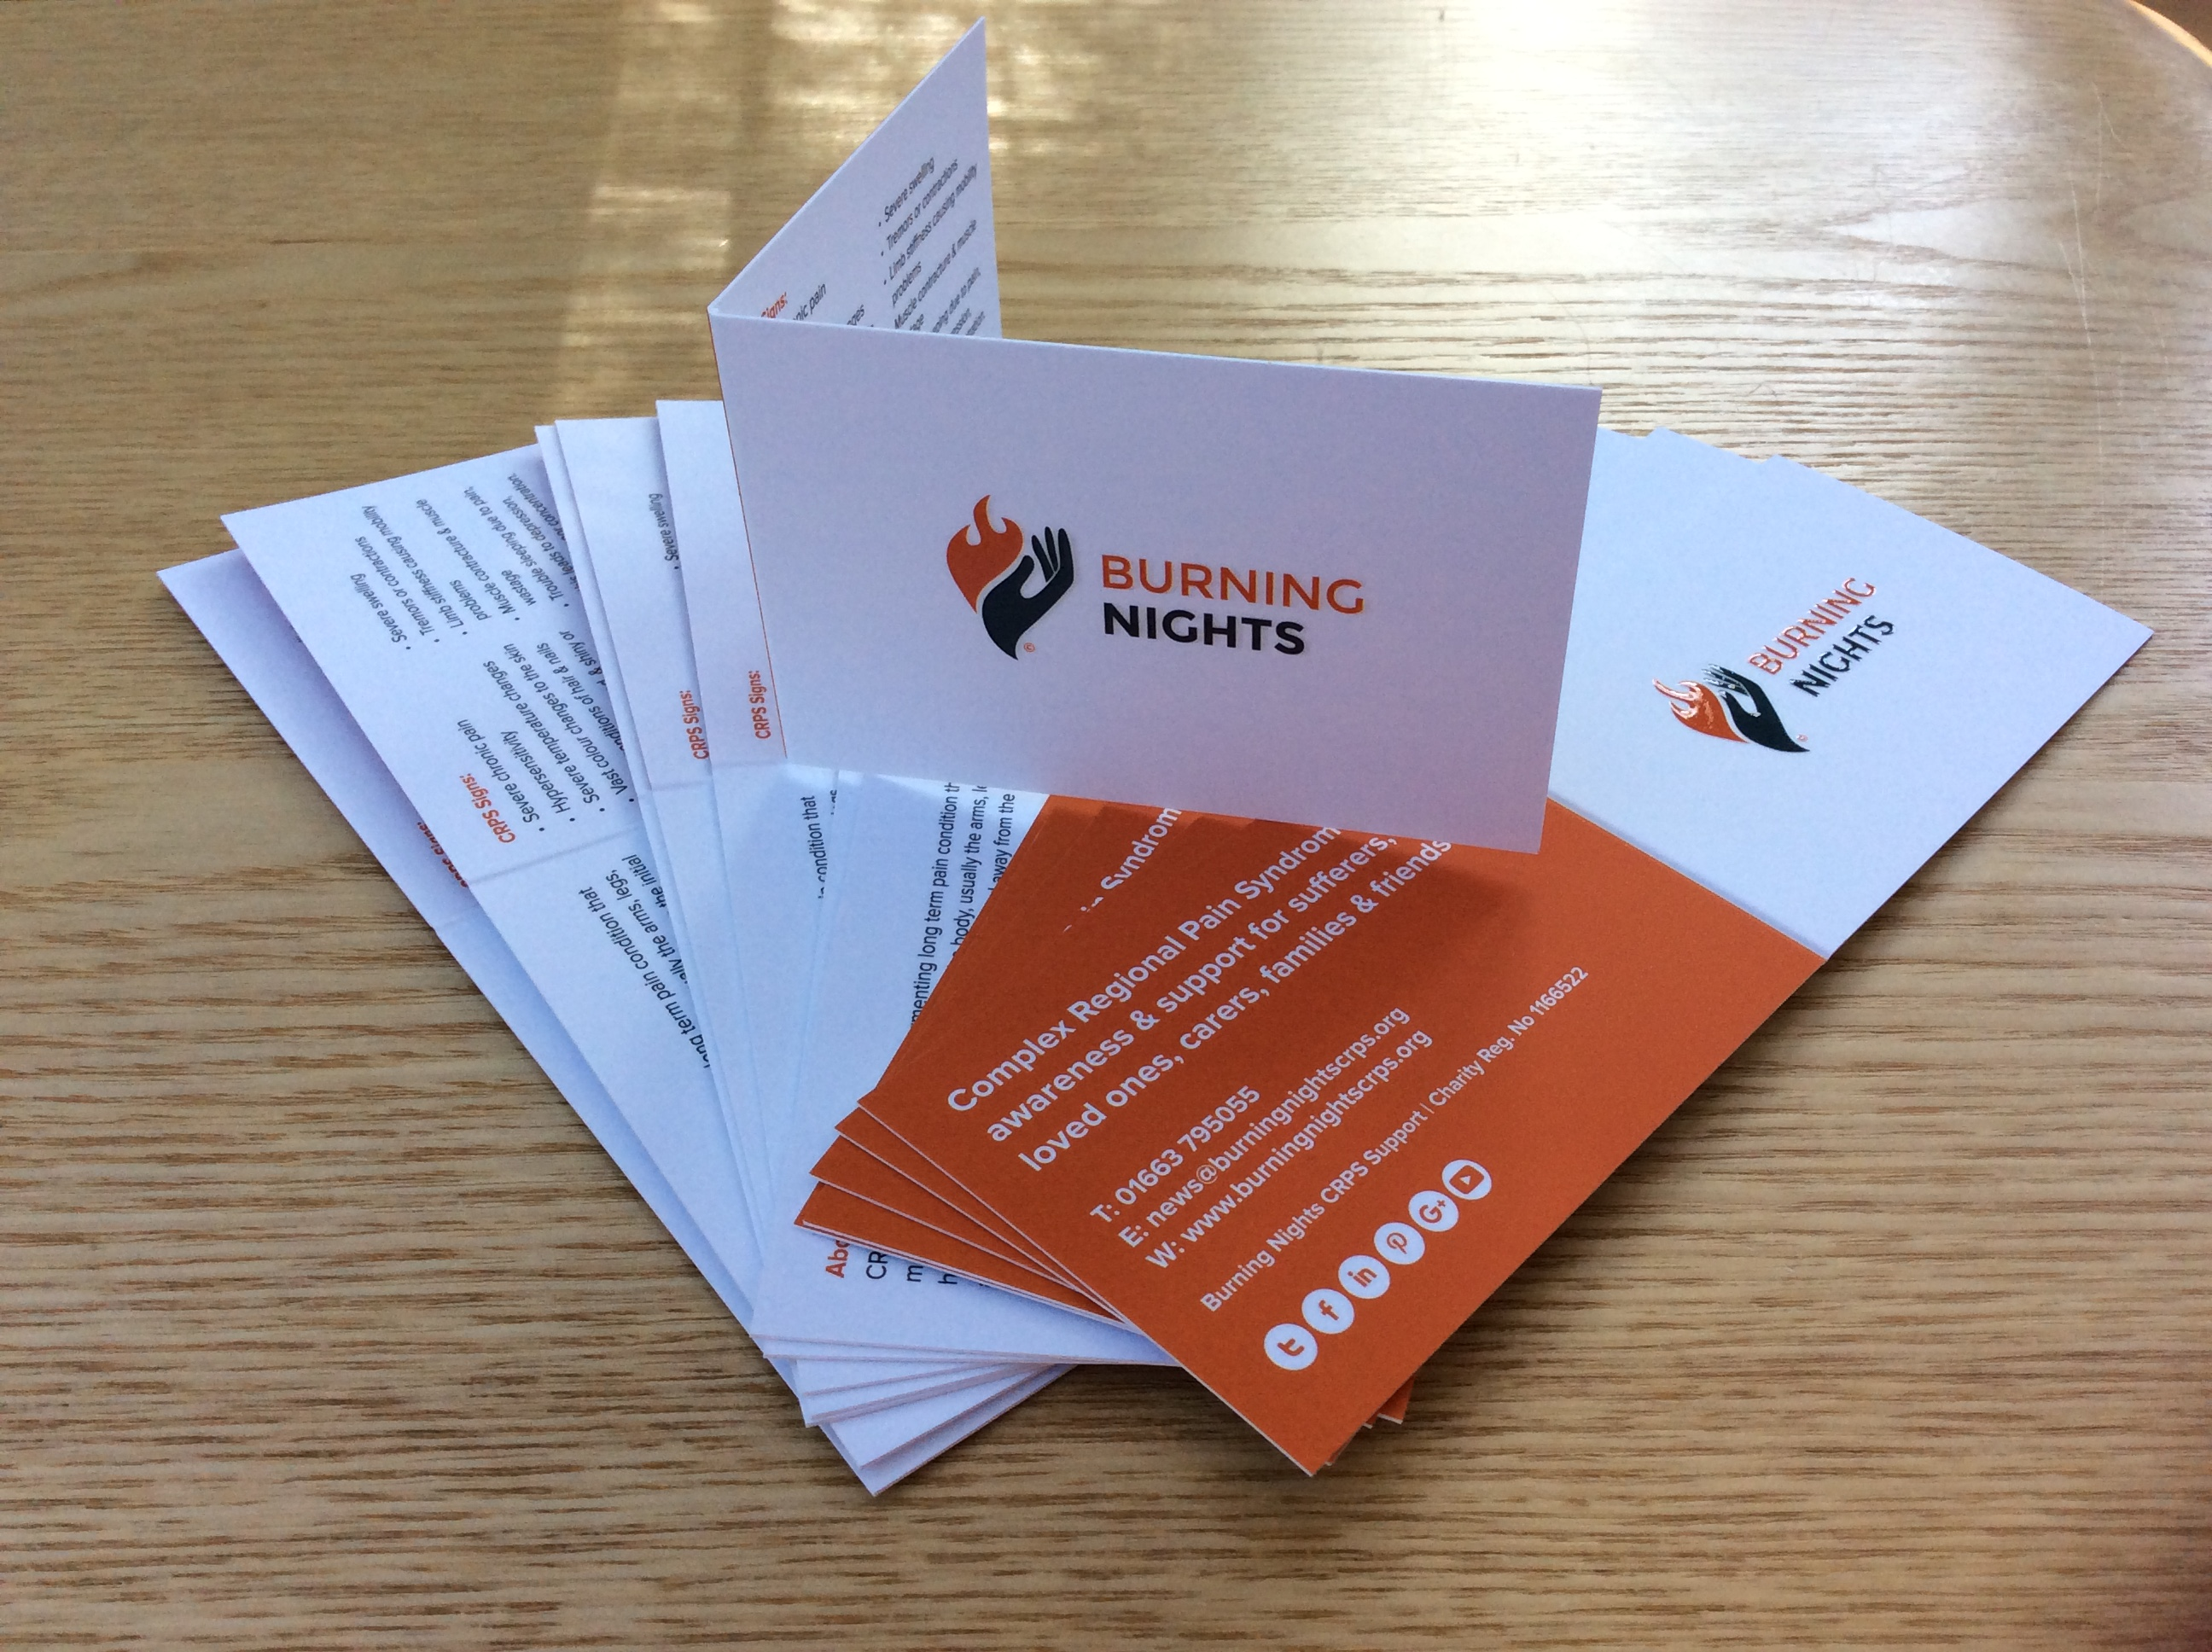 CRPS-RSD Awareness and Information Folded Cards can be purchased via Burning Nights CRPS Support charity. Always keep a description of CRPS handy